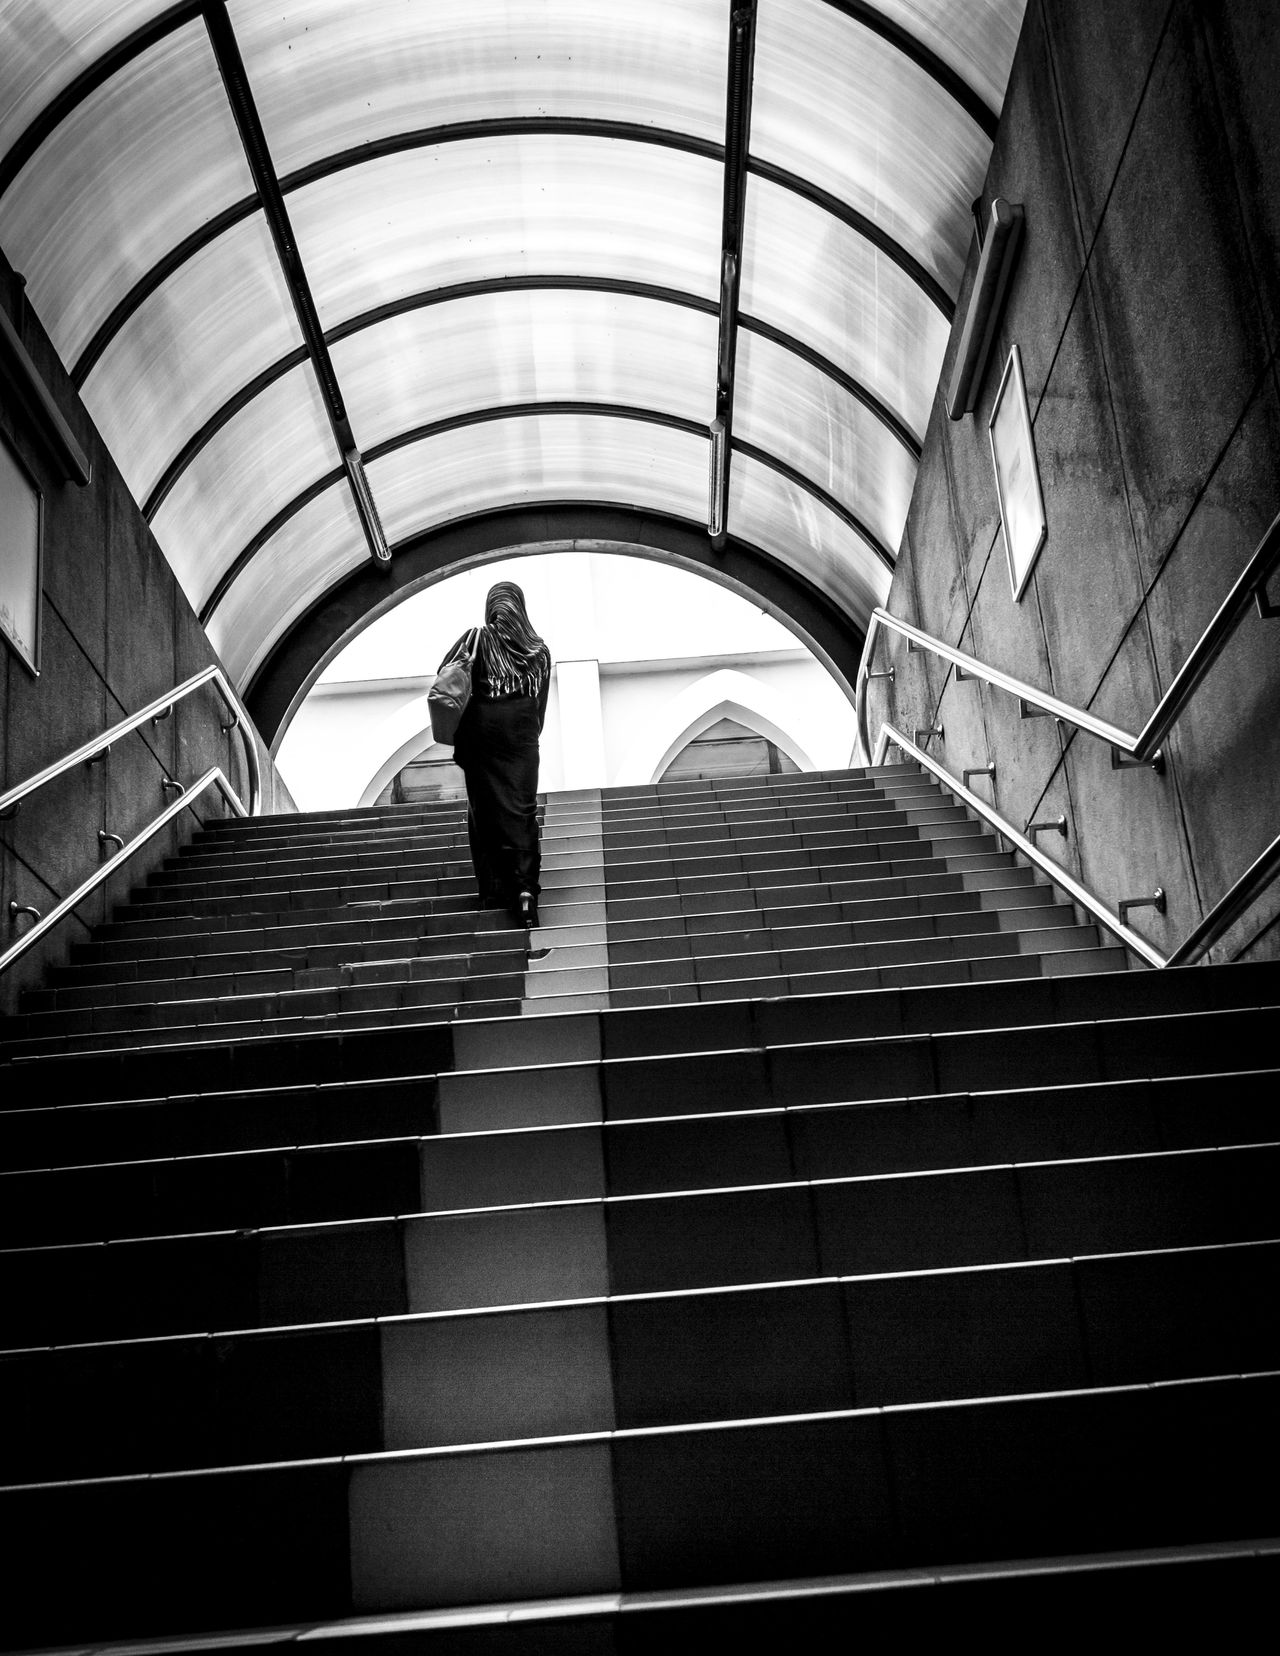 Woman walking up steps from underground tunnel Alone Arch Architecture Ascending B&w Photography Blackandwhite Built Structure City Exit Going Up Low Angle View Muslim Perspective Rear View Staircase Stairs Steps Steps And Staircases Streetphotography The Way Forward Tunnel Up Urban Walking Woman